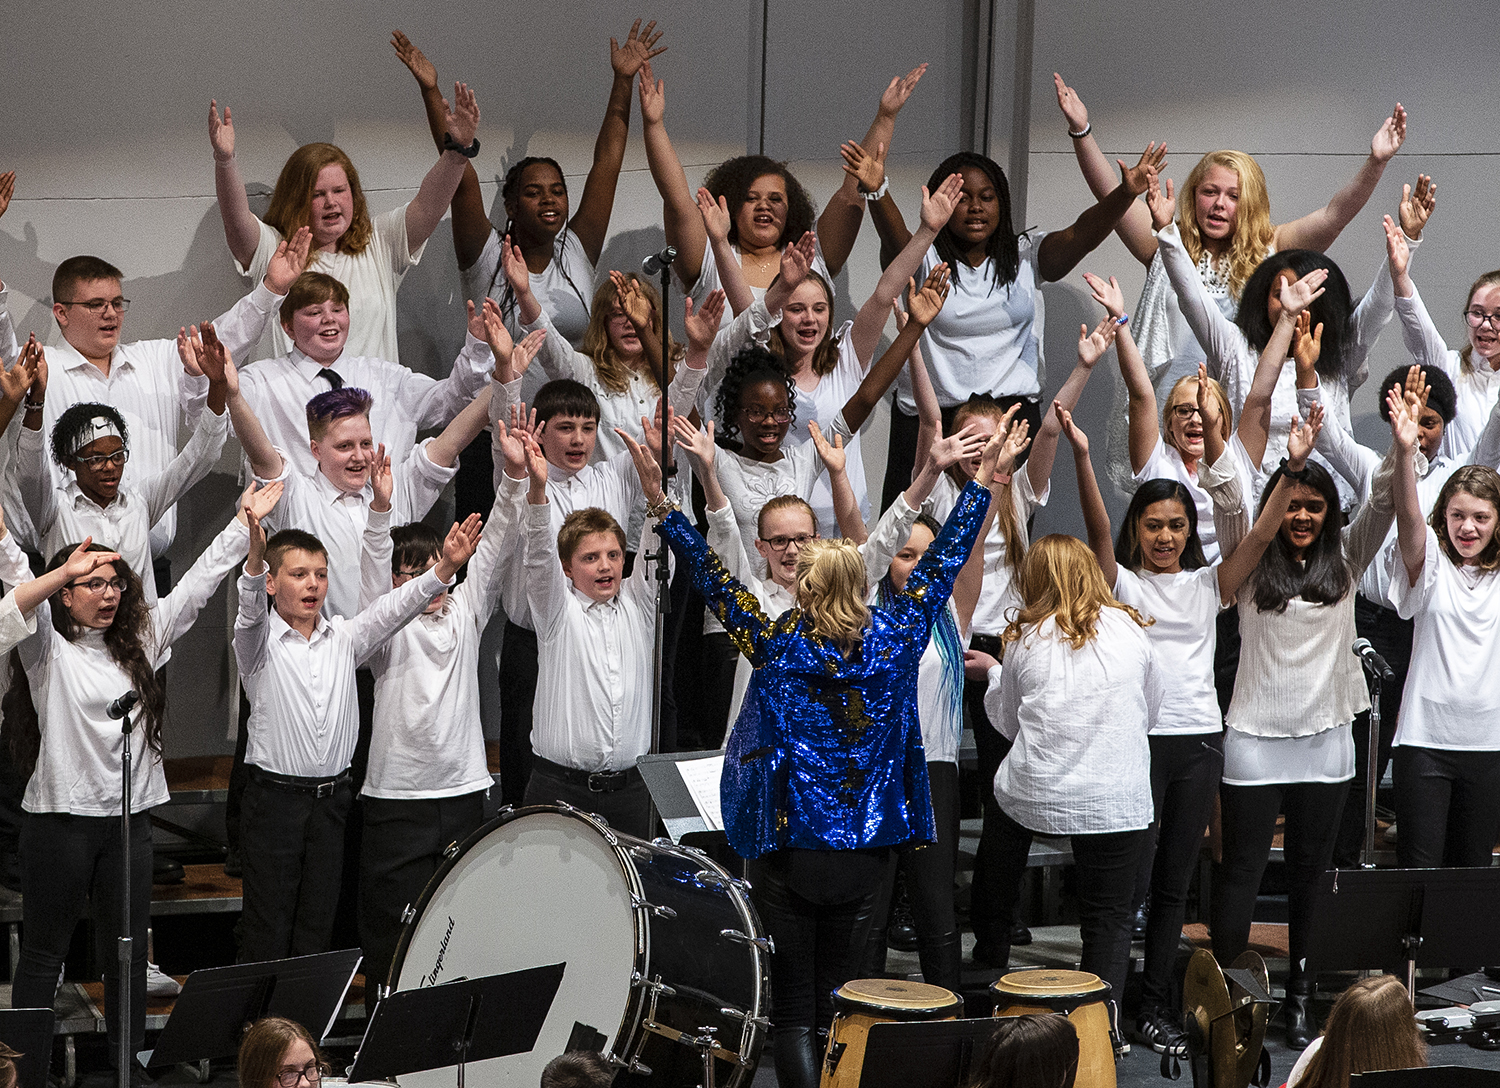 """The All City Middle School Choir, conducted by Jennifer Toney, hit the their mark in unison as they perform """"Come Alive"""" during the District 186 All City Music Festival at the Sangamon Auditorium on the campus of the Univeristy of Illinois Springfield, Wednesday, April 17, 2019, in Springfield, Ill. The performance, a tradition of over 30 years, is funded in part by the Springfield Public Schools Foundation and features around 450 students making up the All City Middle School Band and Choir along with the All City High School Band and Choir. [Justin L. Fowler/The State Journal-Register]"""